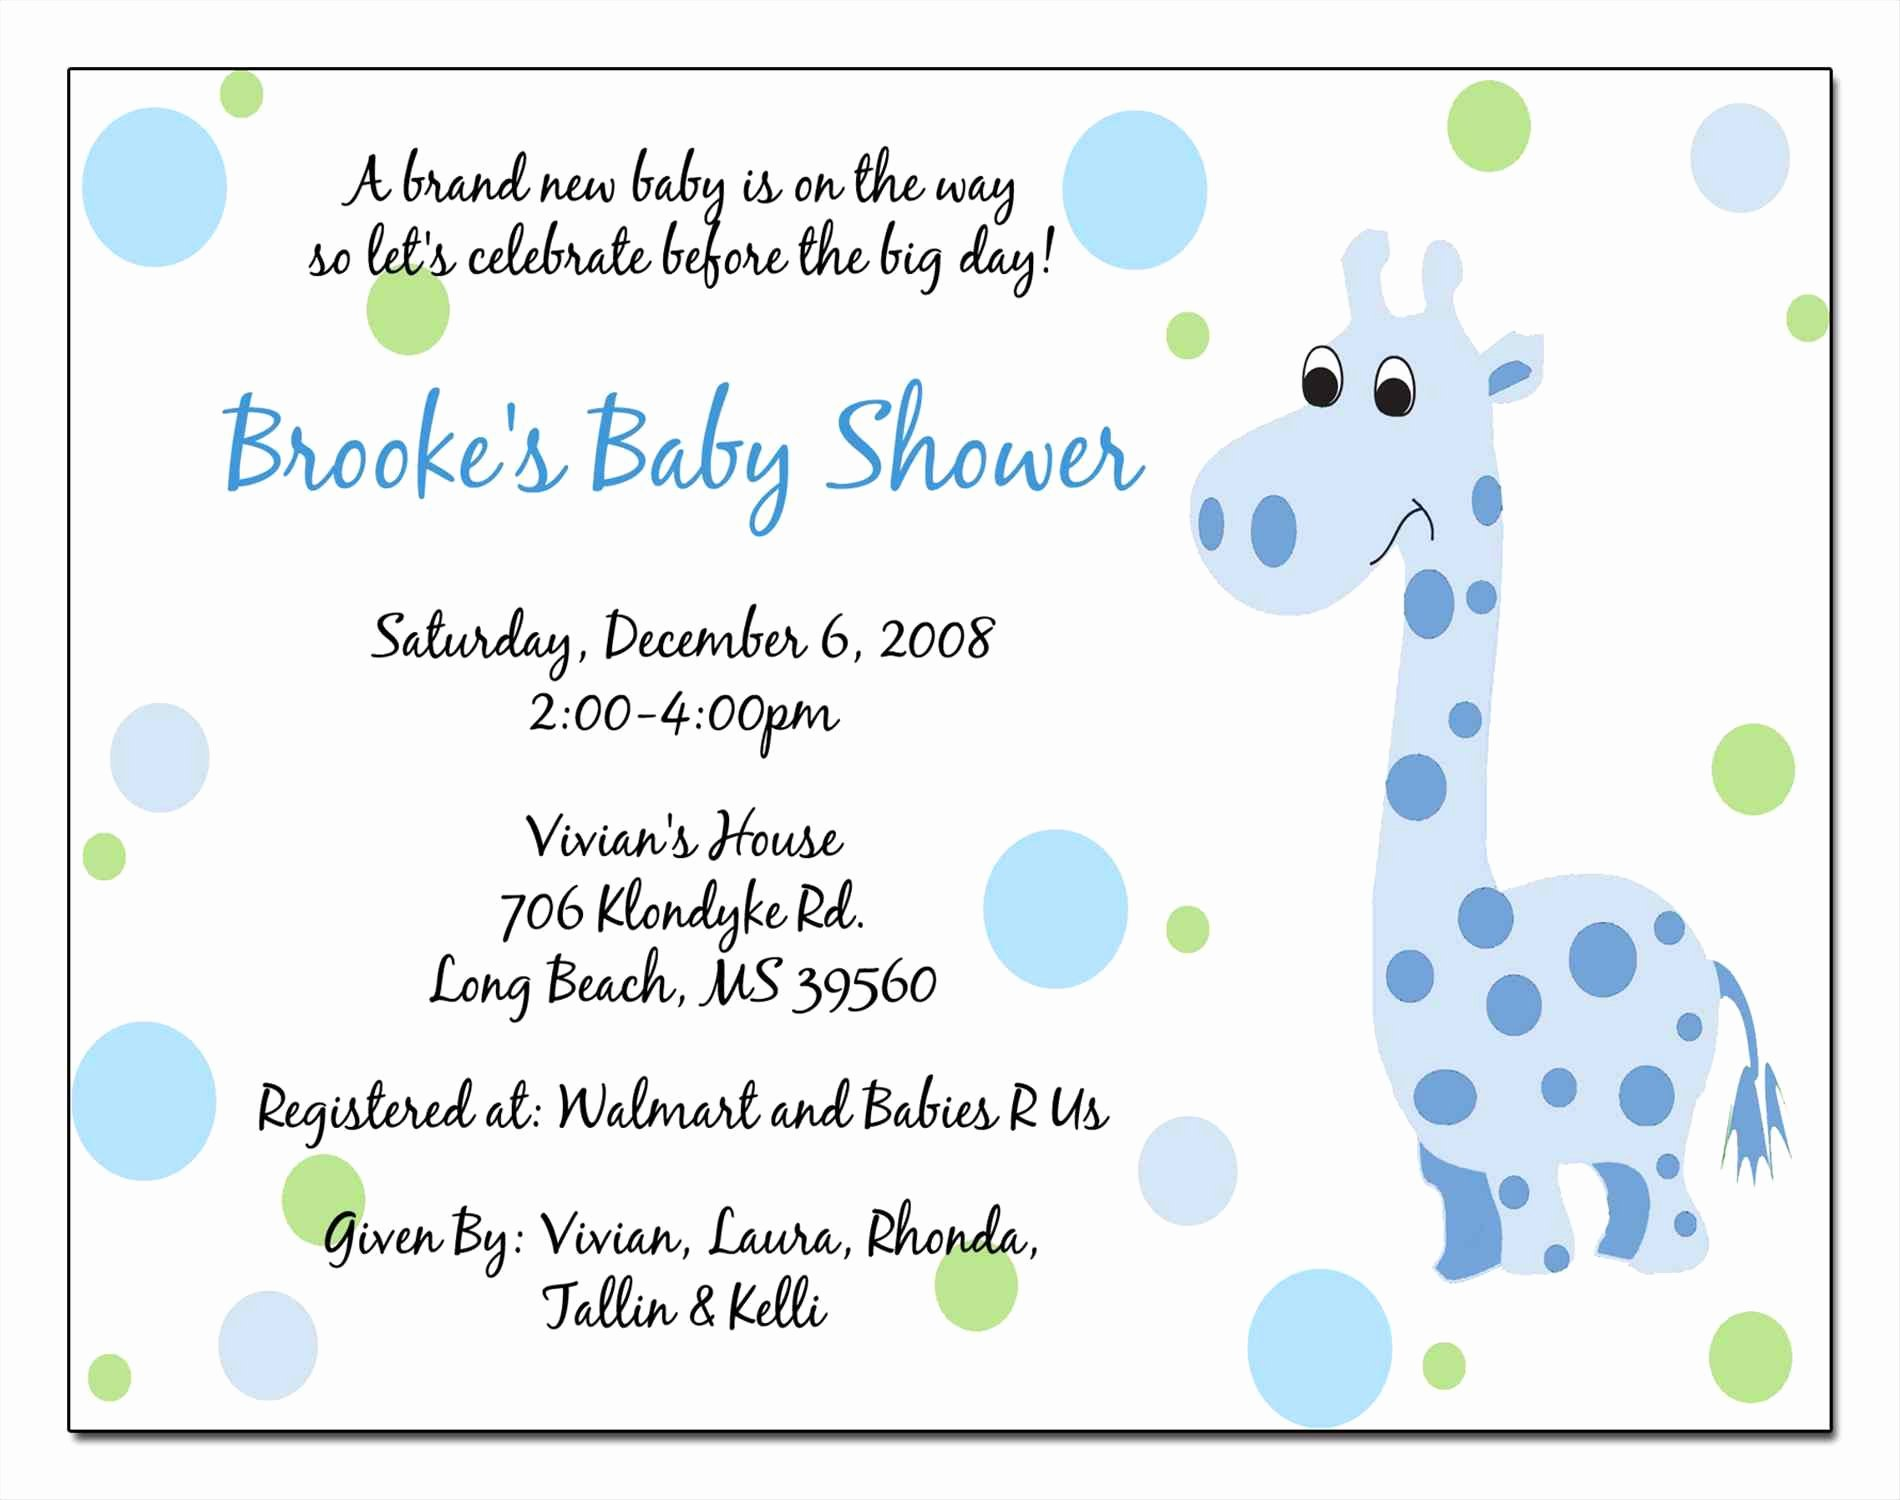 Baby Shower Card Template Luxury Baby Shower Invitation Cards In Gujarati Yourweek